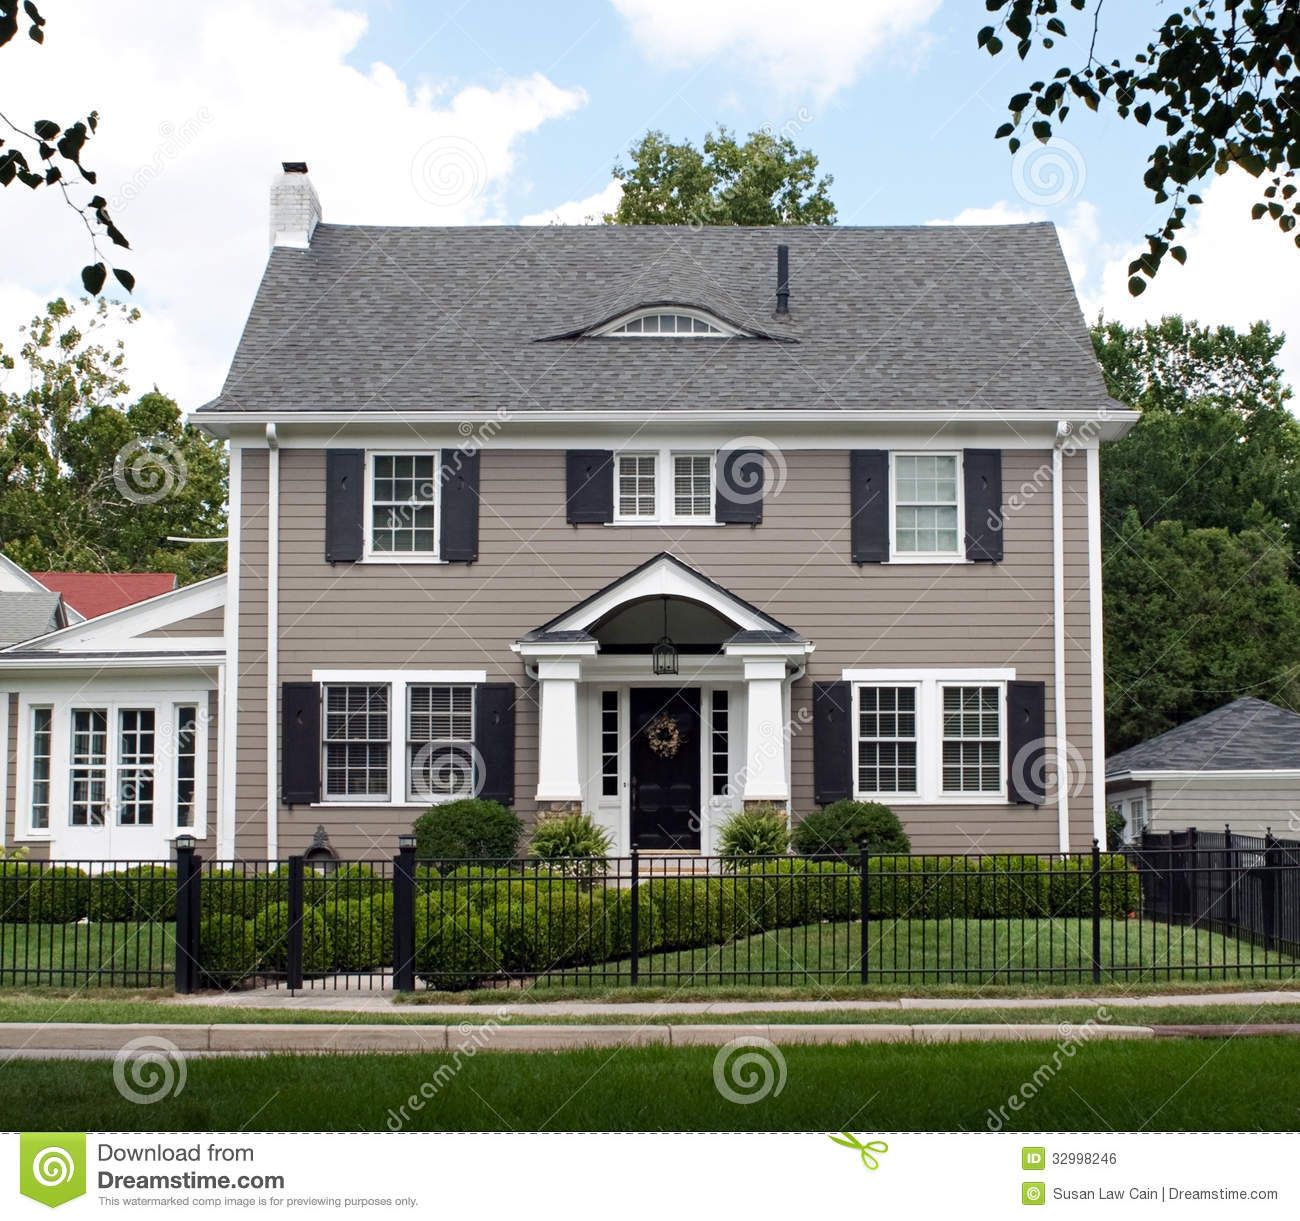 Excellent Two Story House Gray Stock Photo Image 55857184 Largest Home Design Picture Inspirations Pitcheantrous